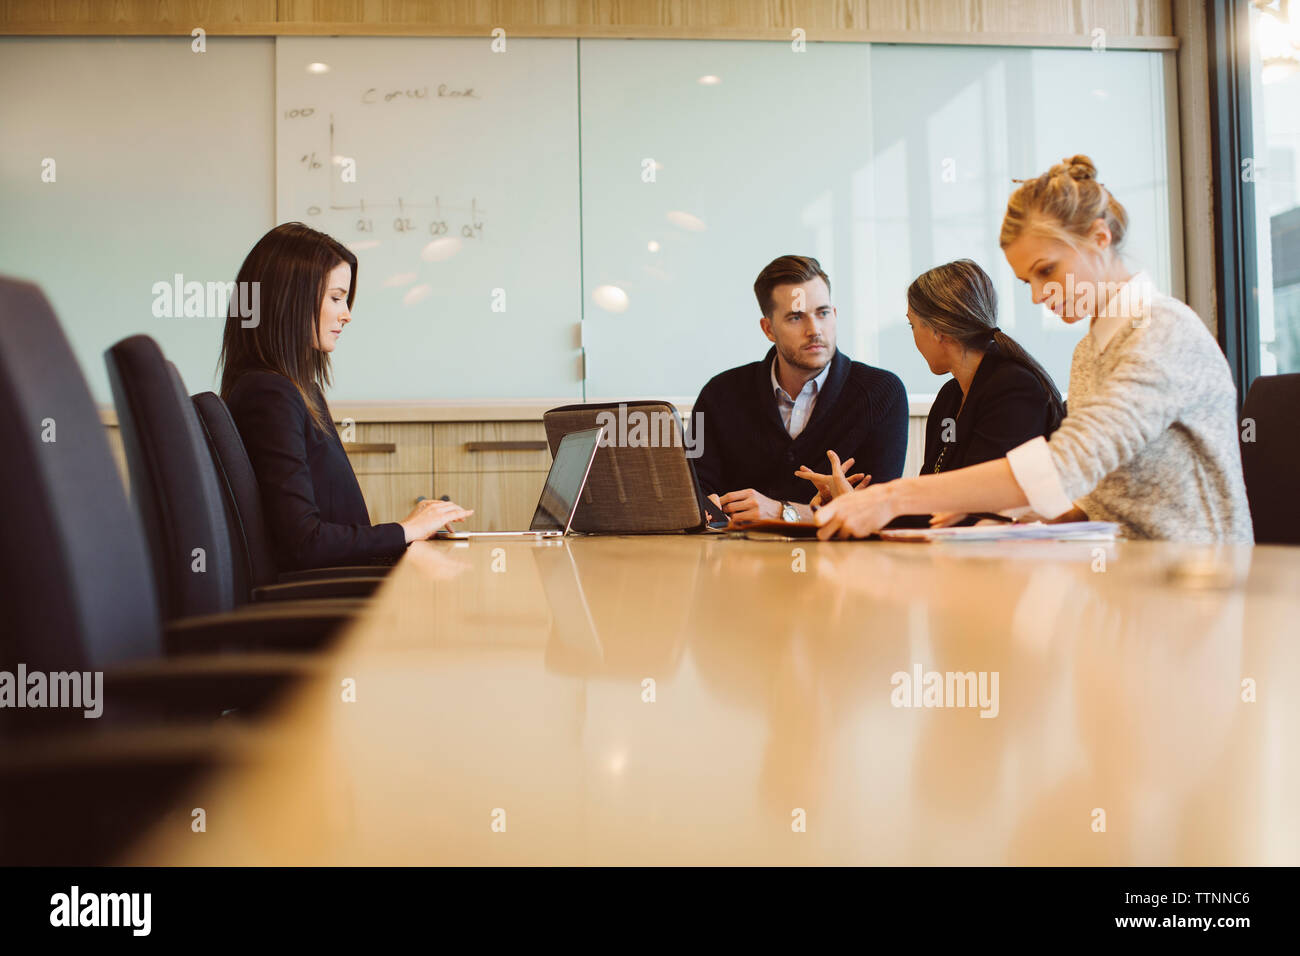 Business people discussing in meeting at board room - Stock Image